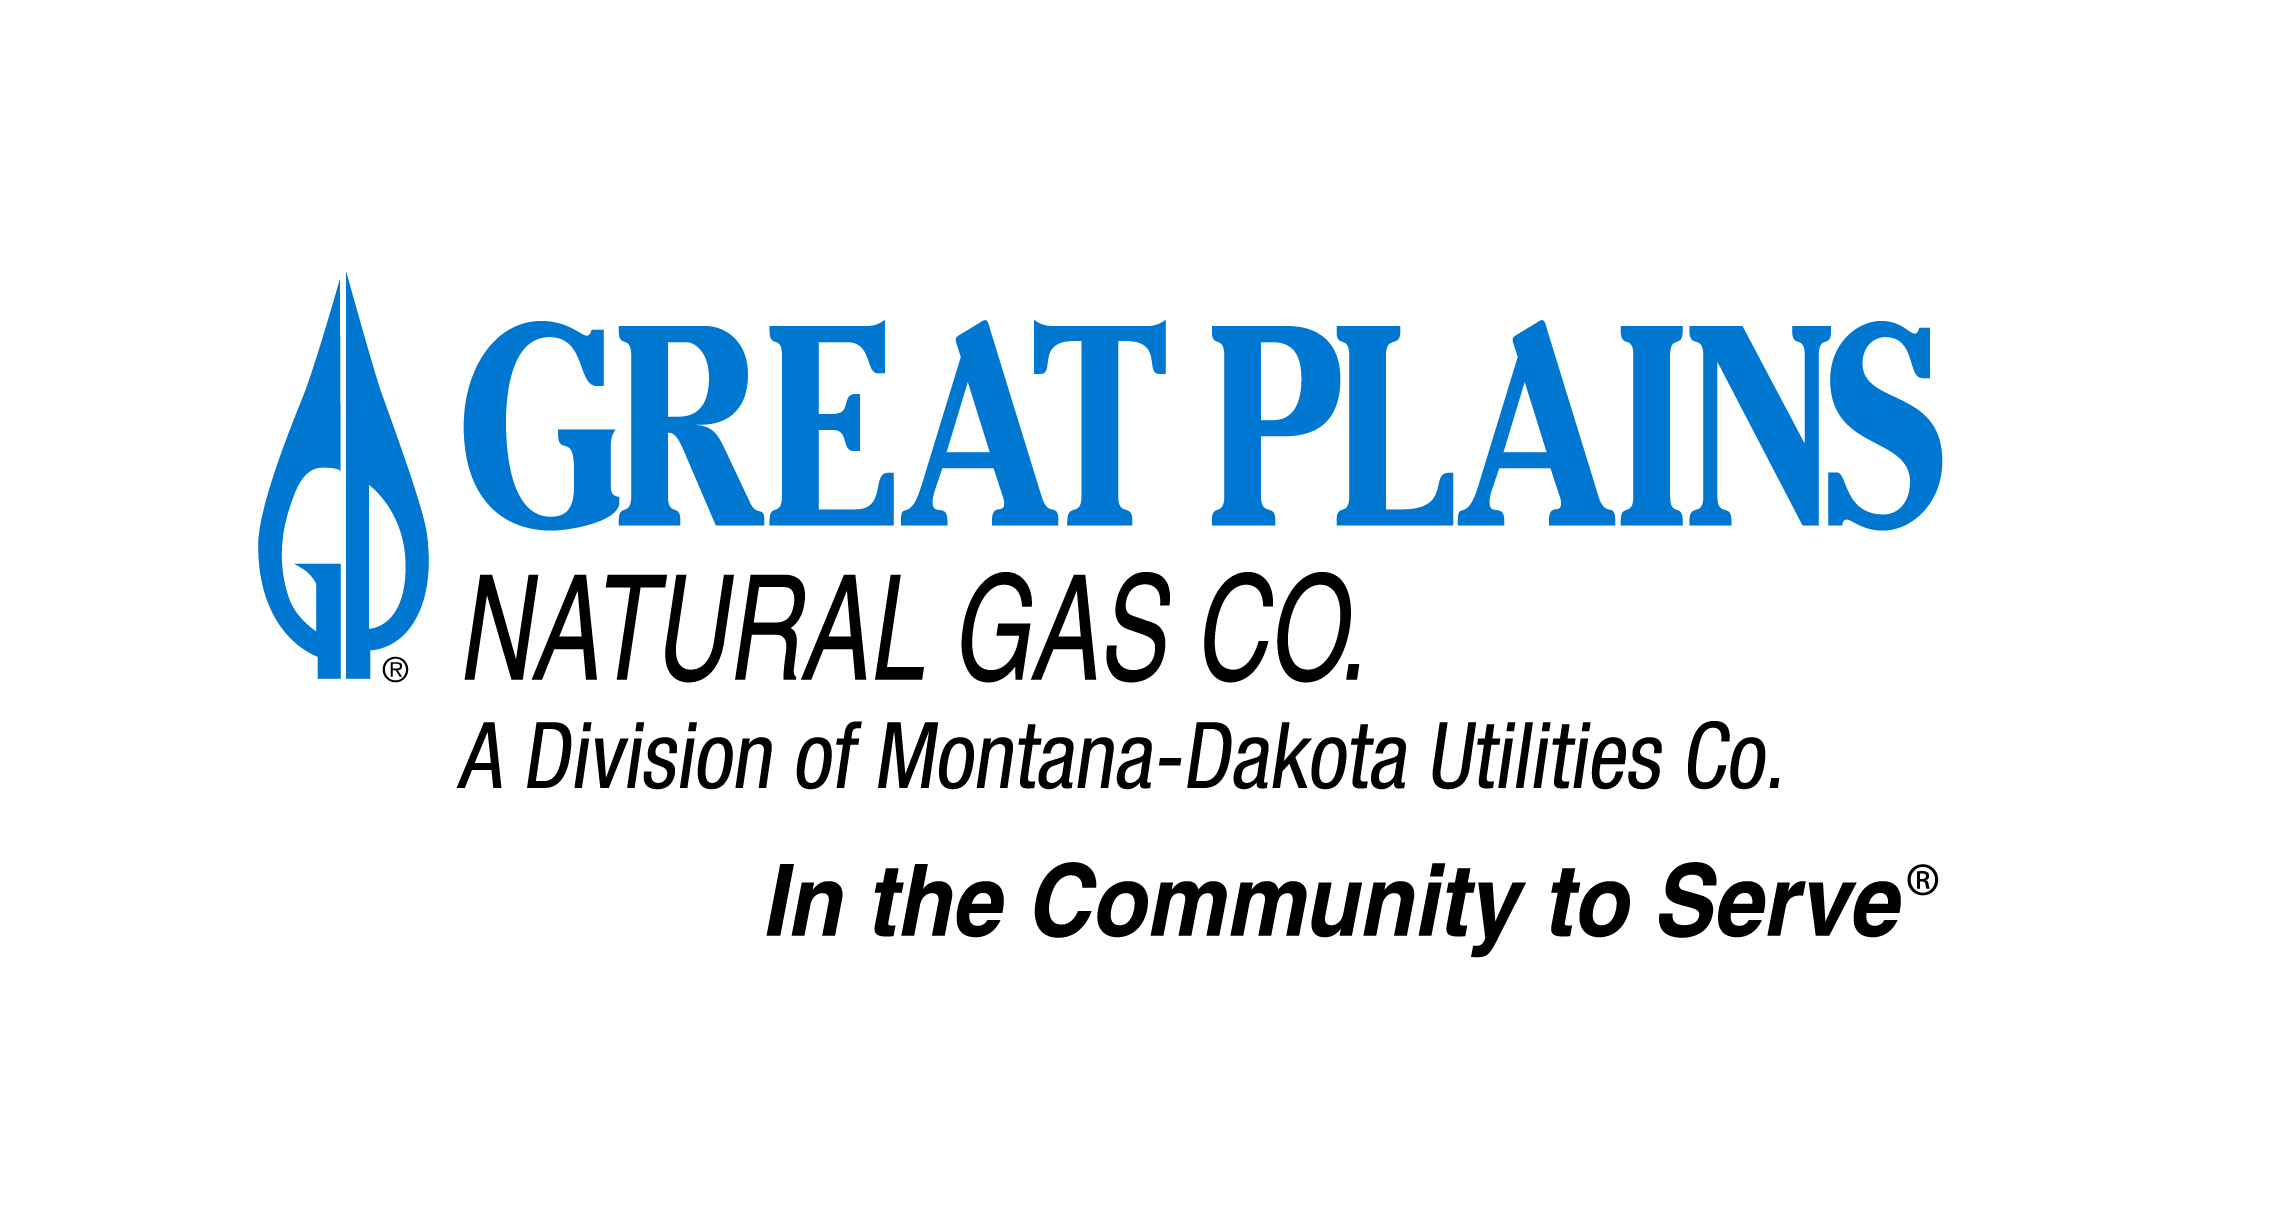 Great Plains Natural Gas Co.